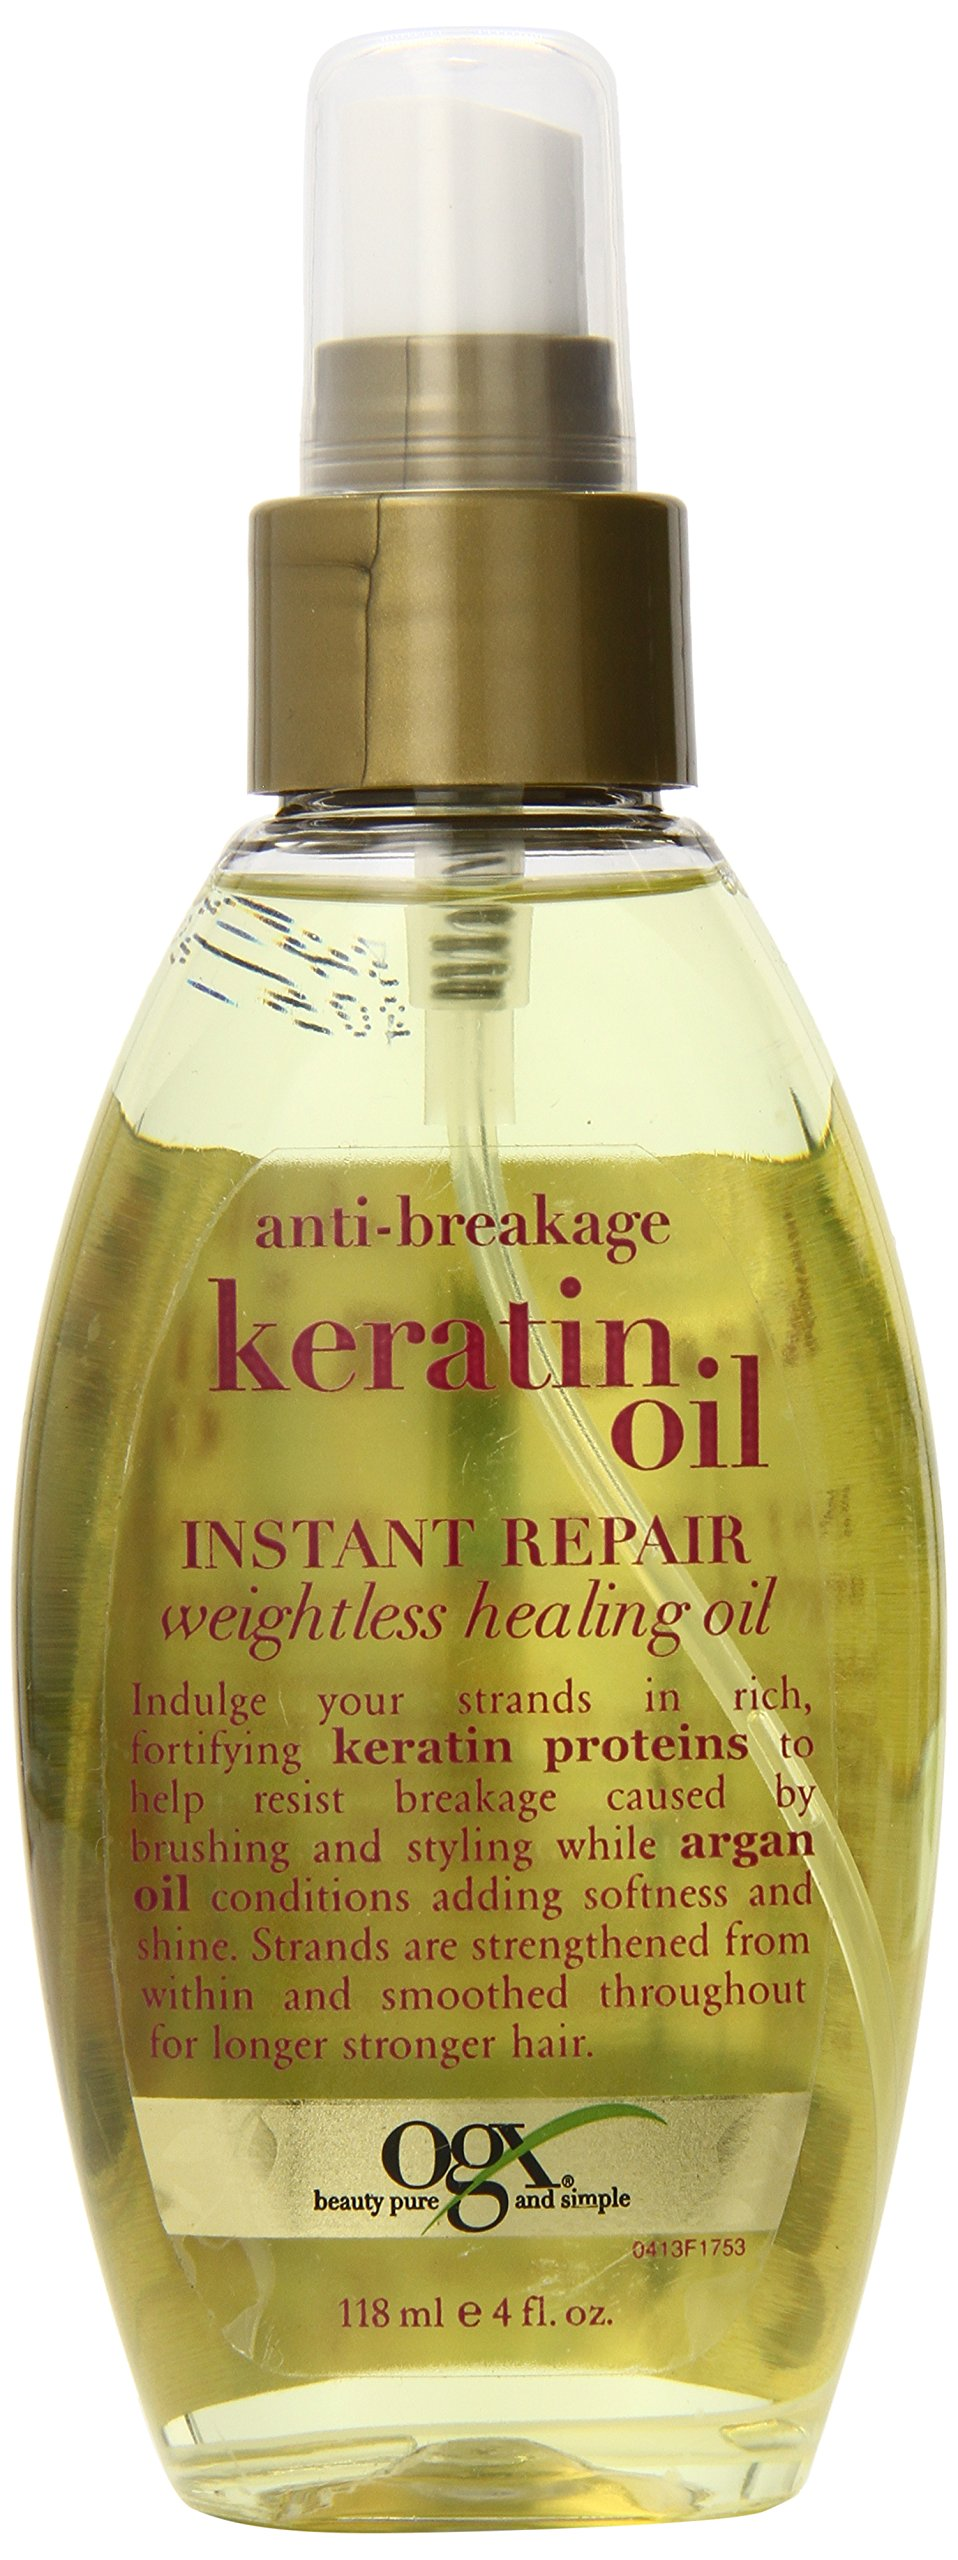 OGX Weightless Healing Oil, Anti-Breakage Keratin Oil Instant Repair, 4oz